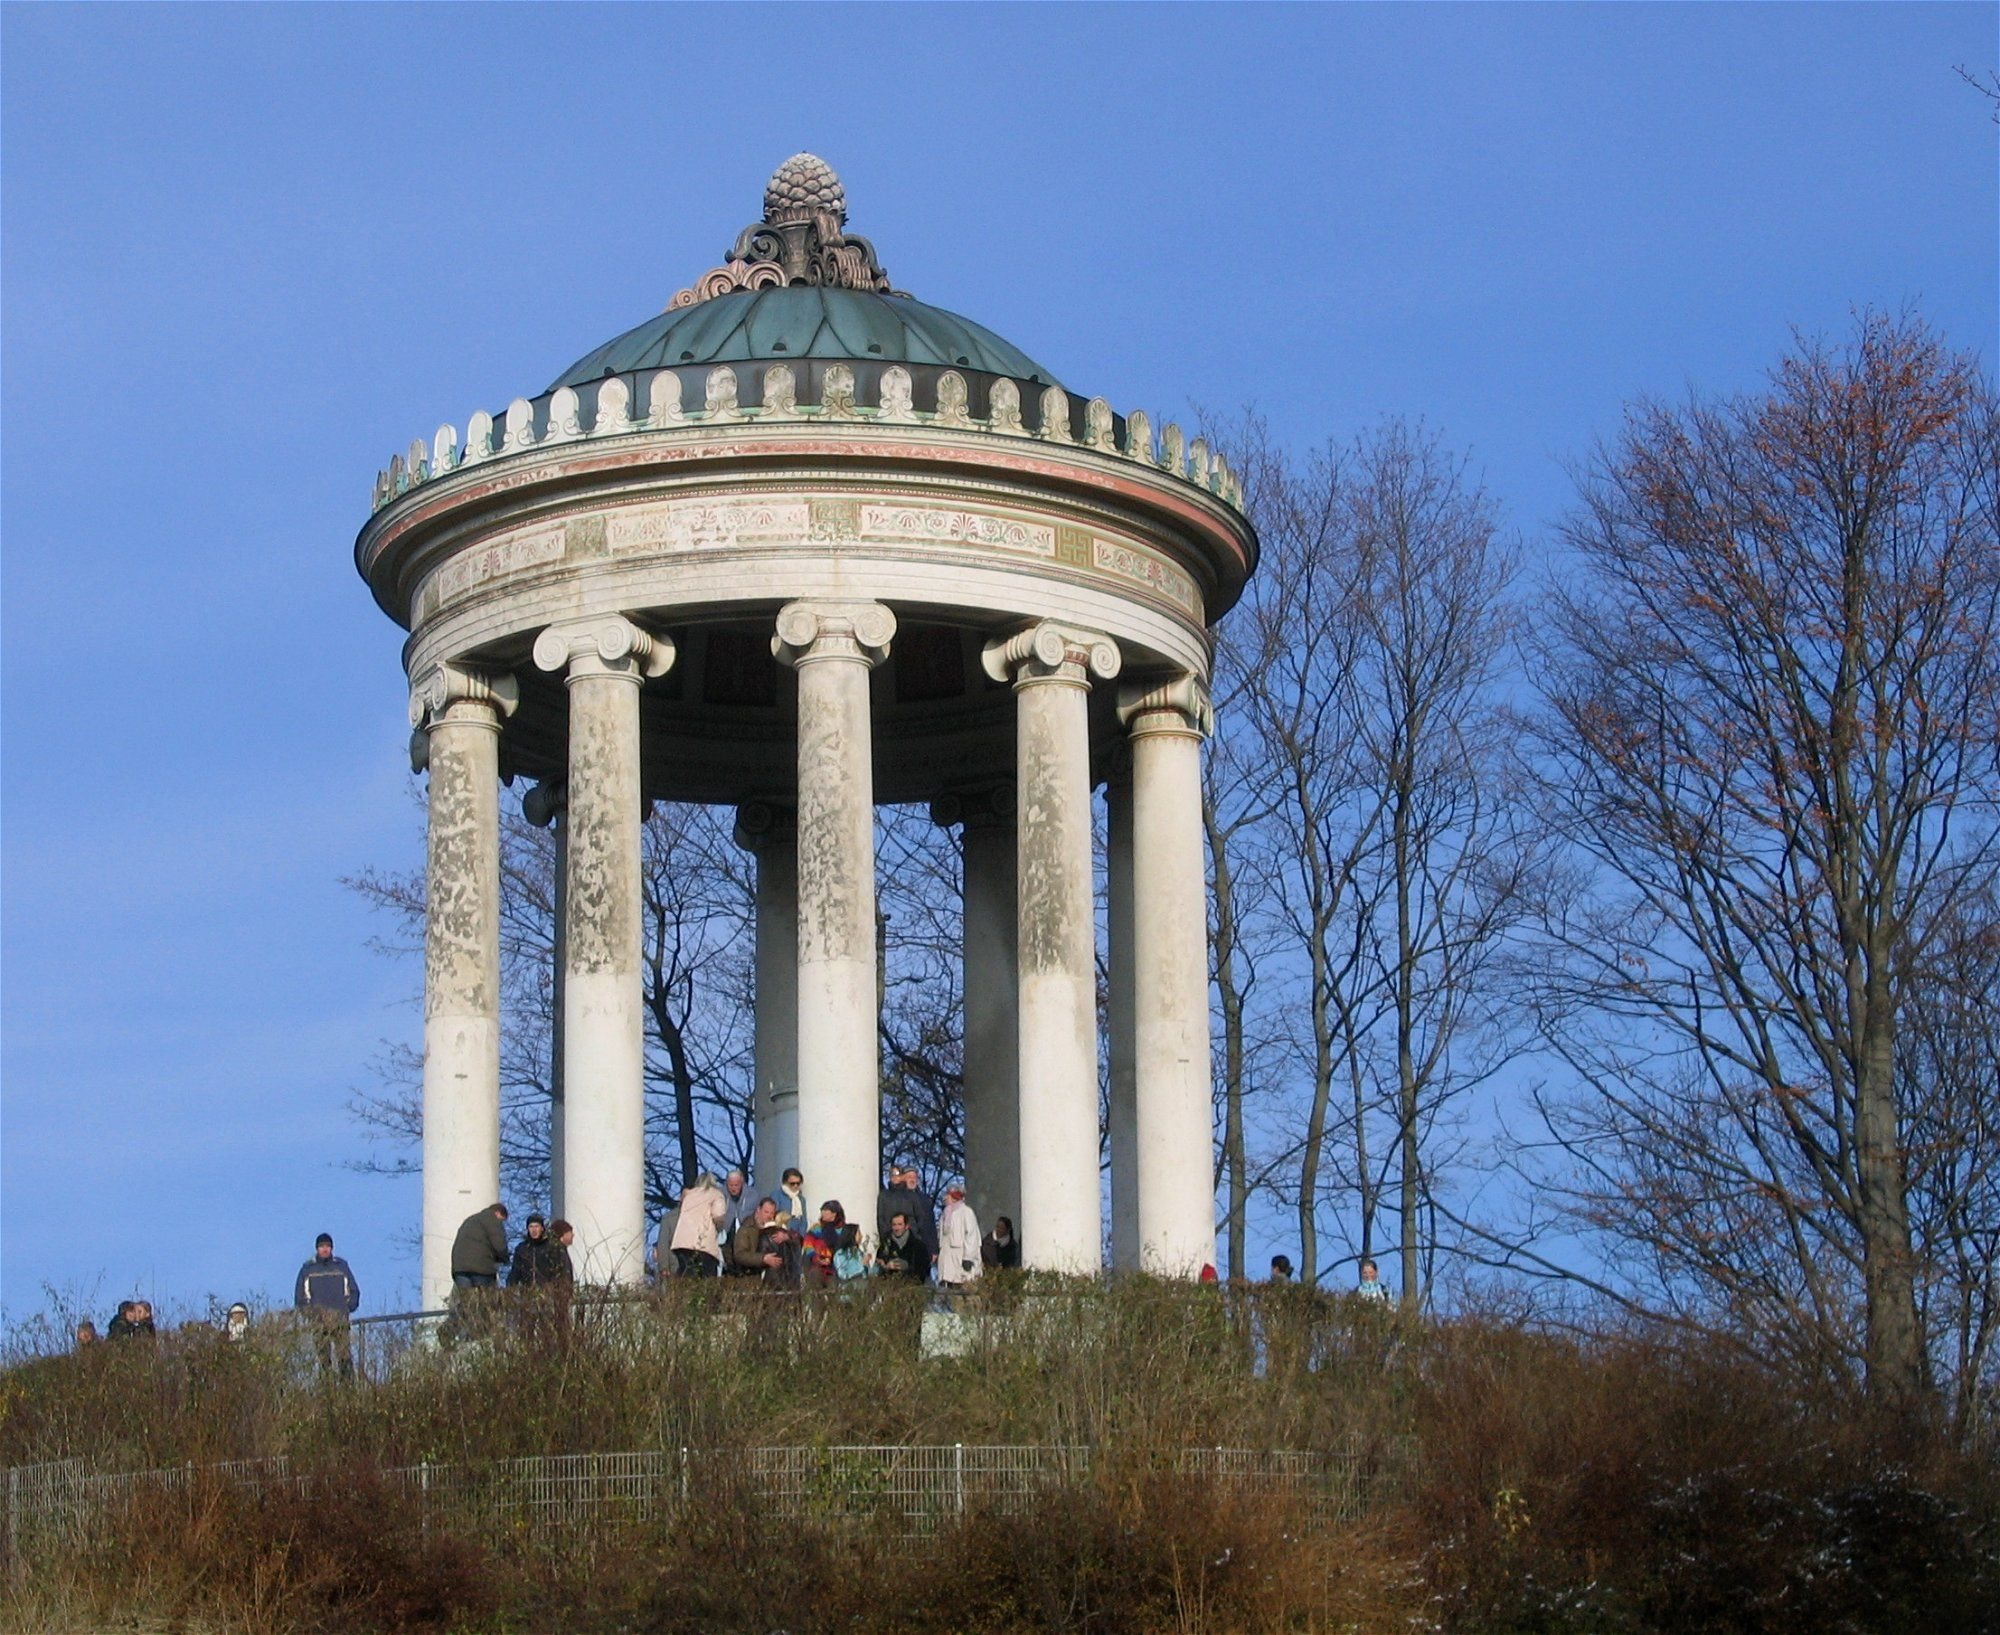 Cute TH CENTURY Neo Classicism Germany Leo Von Klenze Monopteral temple in the English Garden Munich Pinterest Munich Temple and